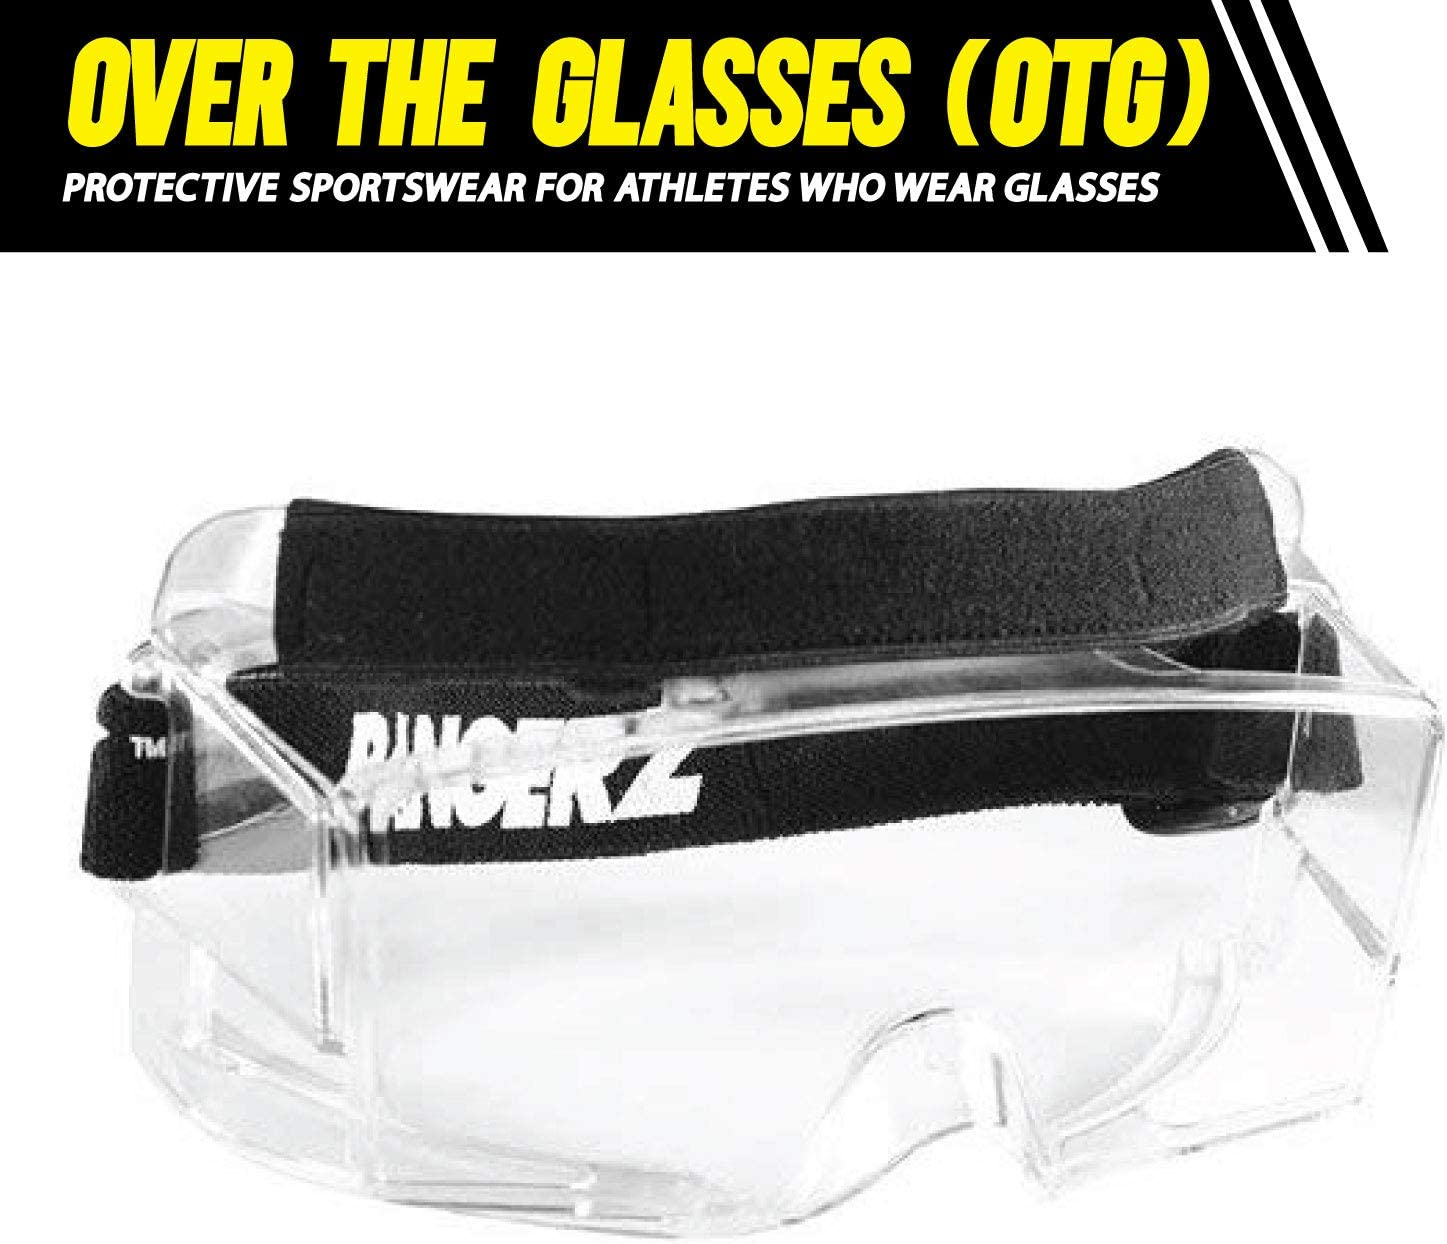 Bangerz HS-OTG Over-The-Glasses Eyeguard